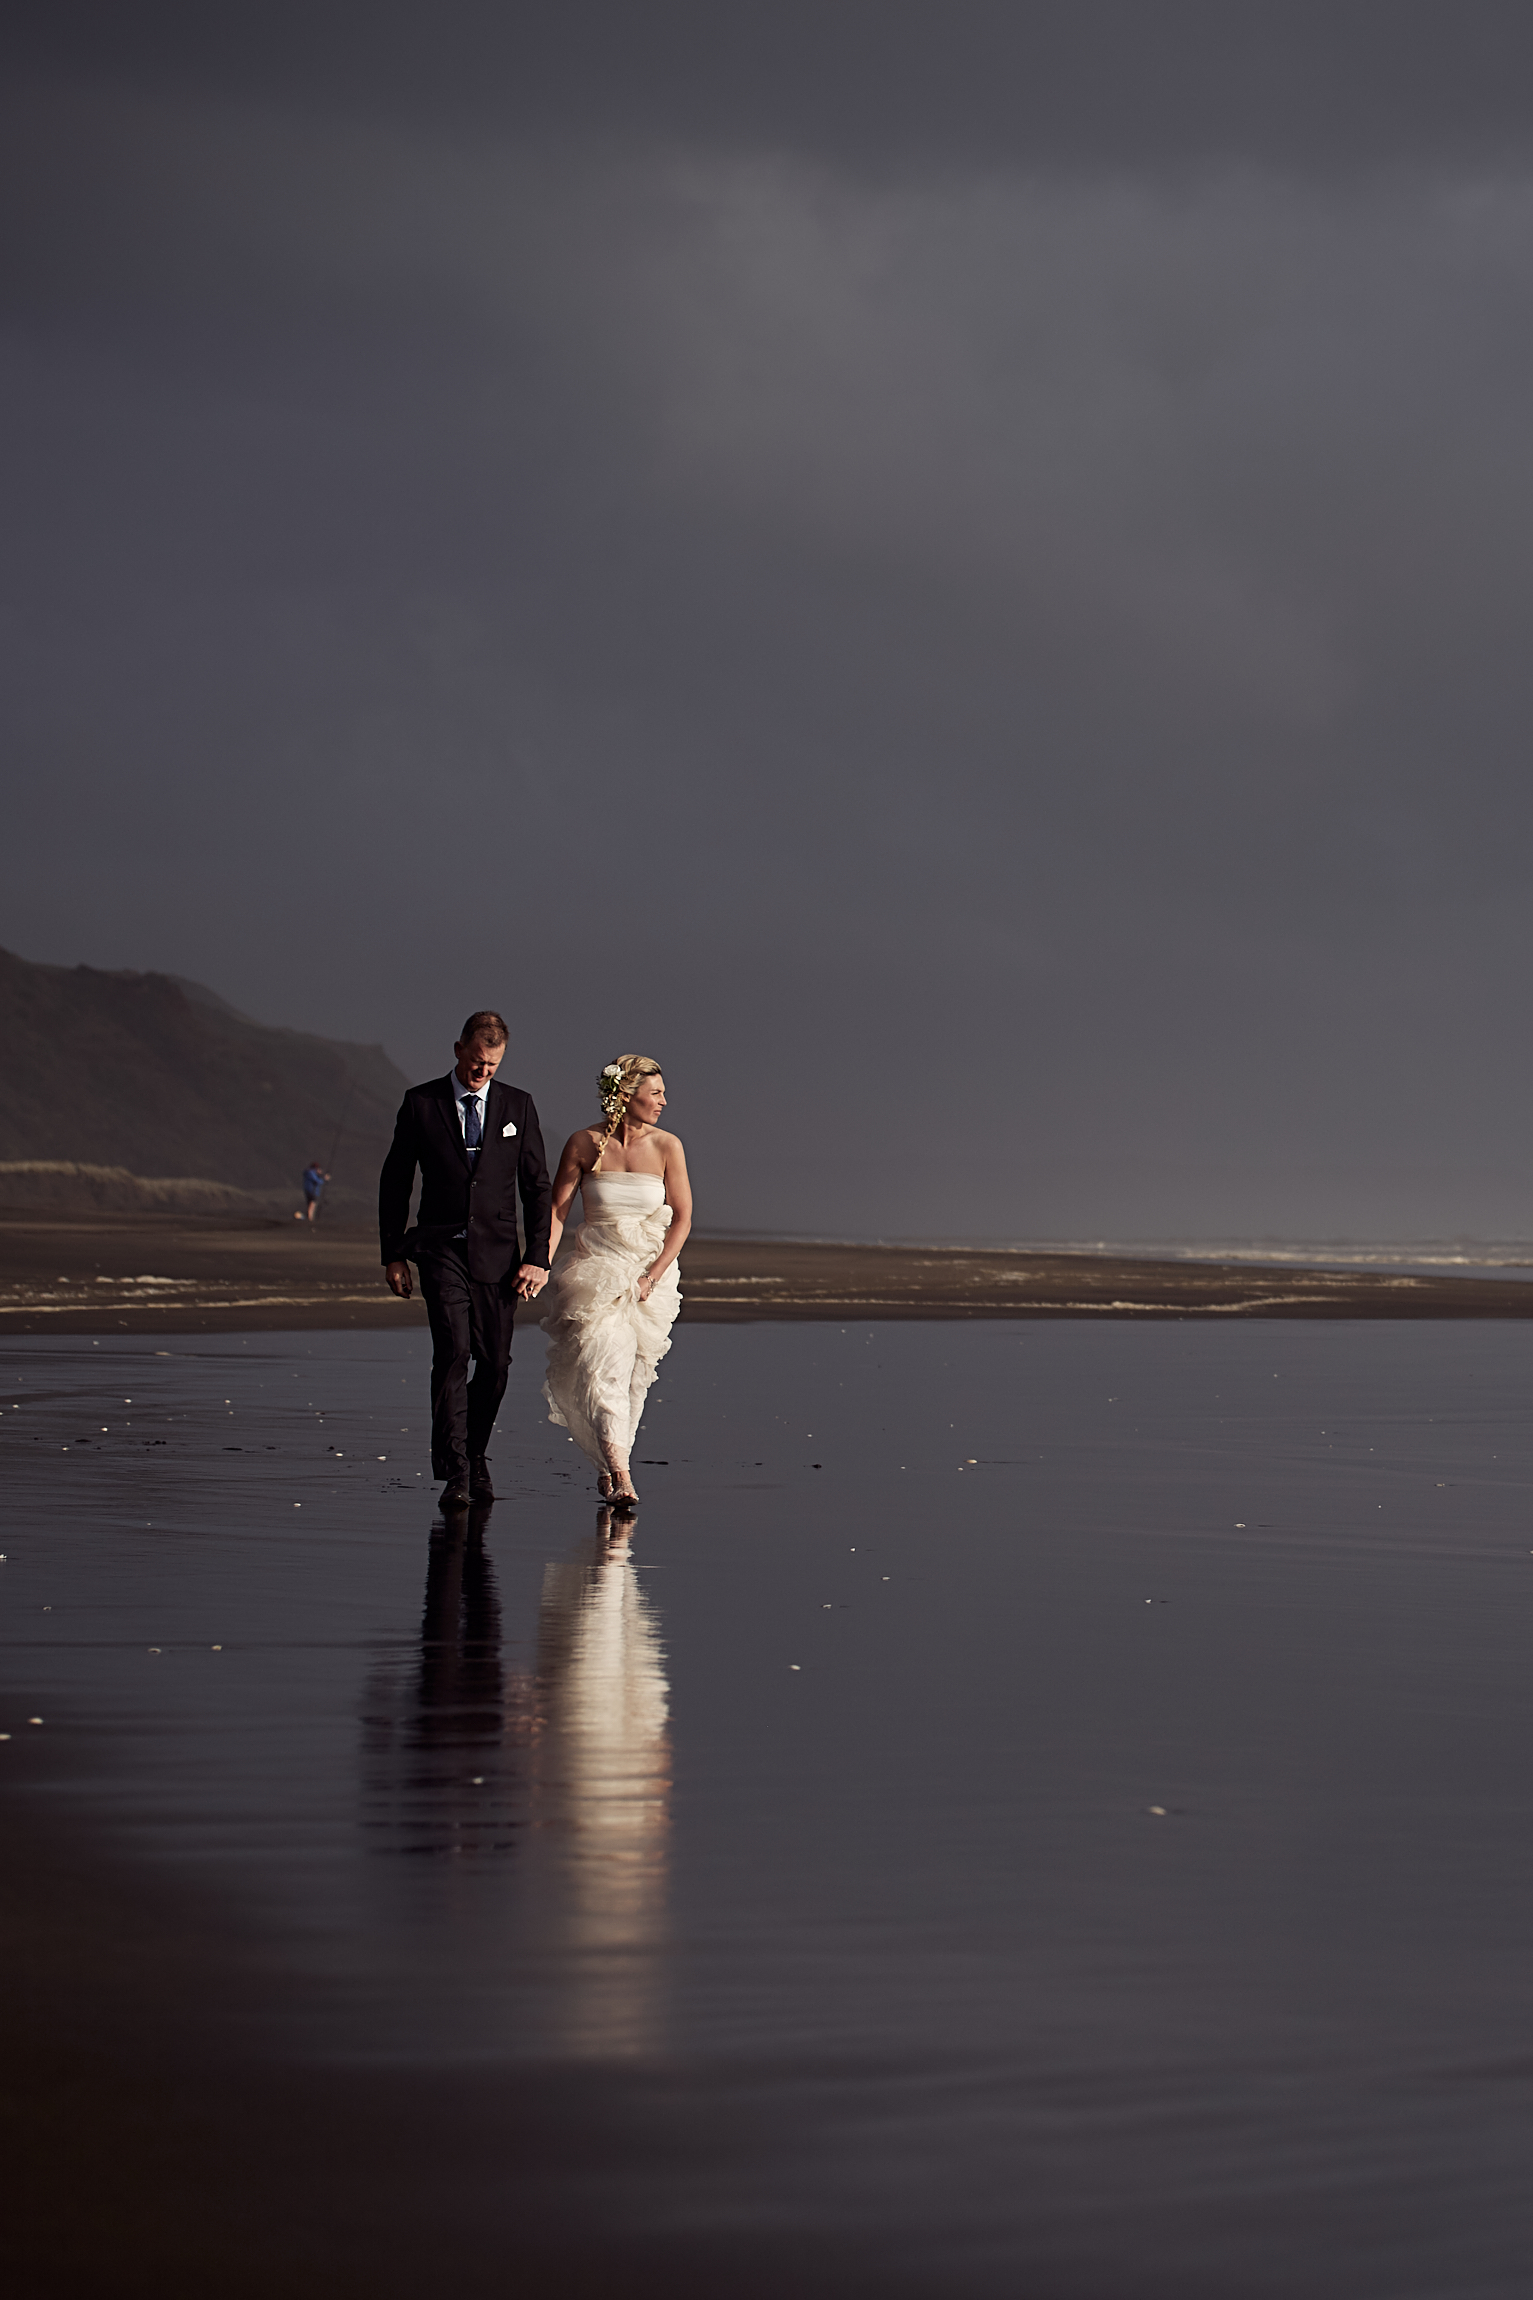 newlyweds strolling along beach